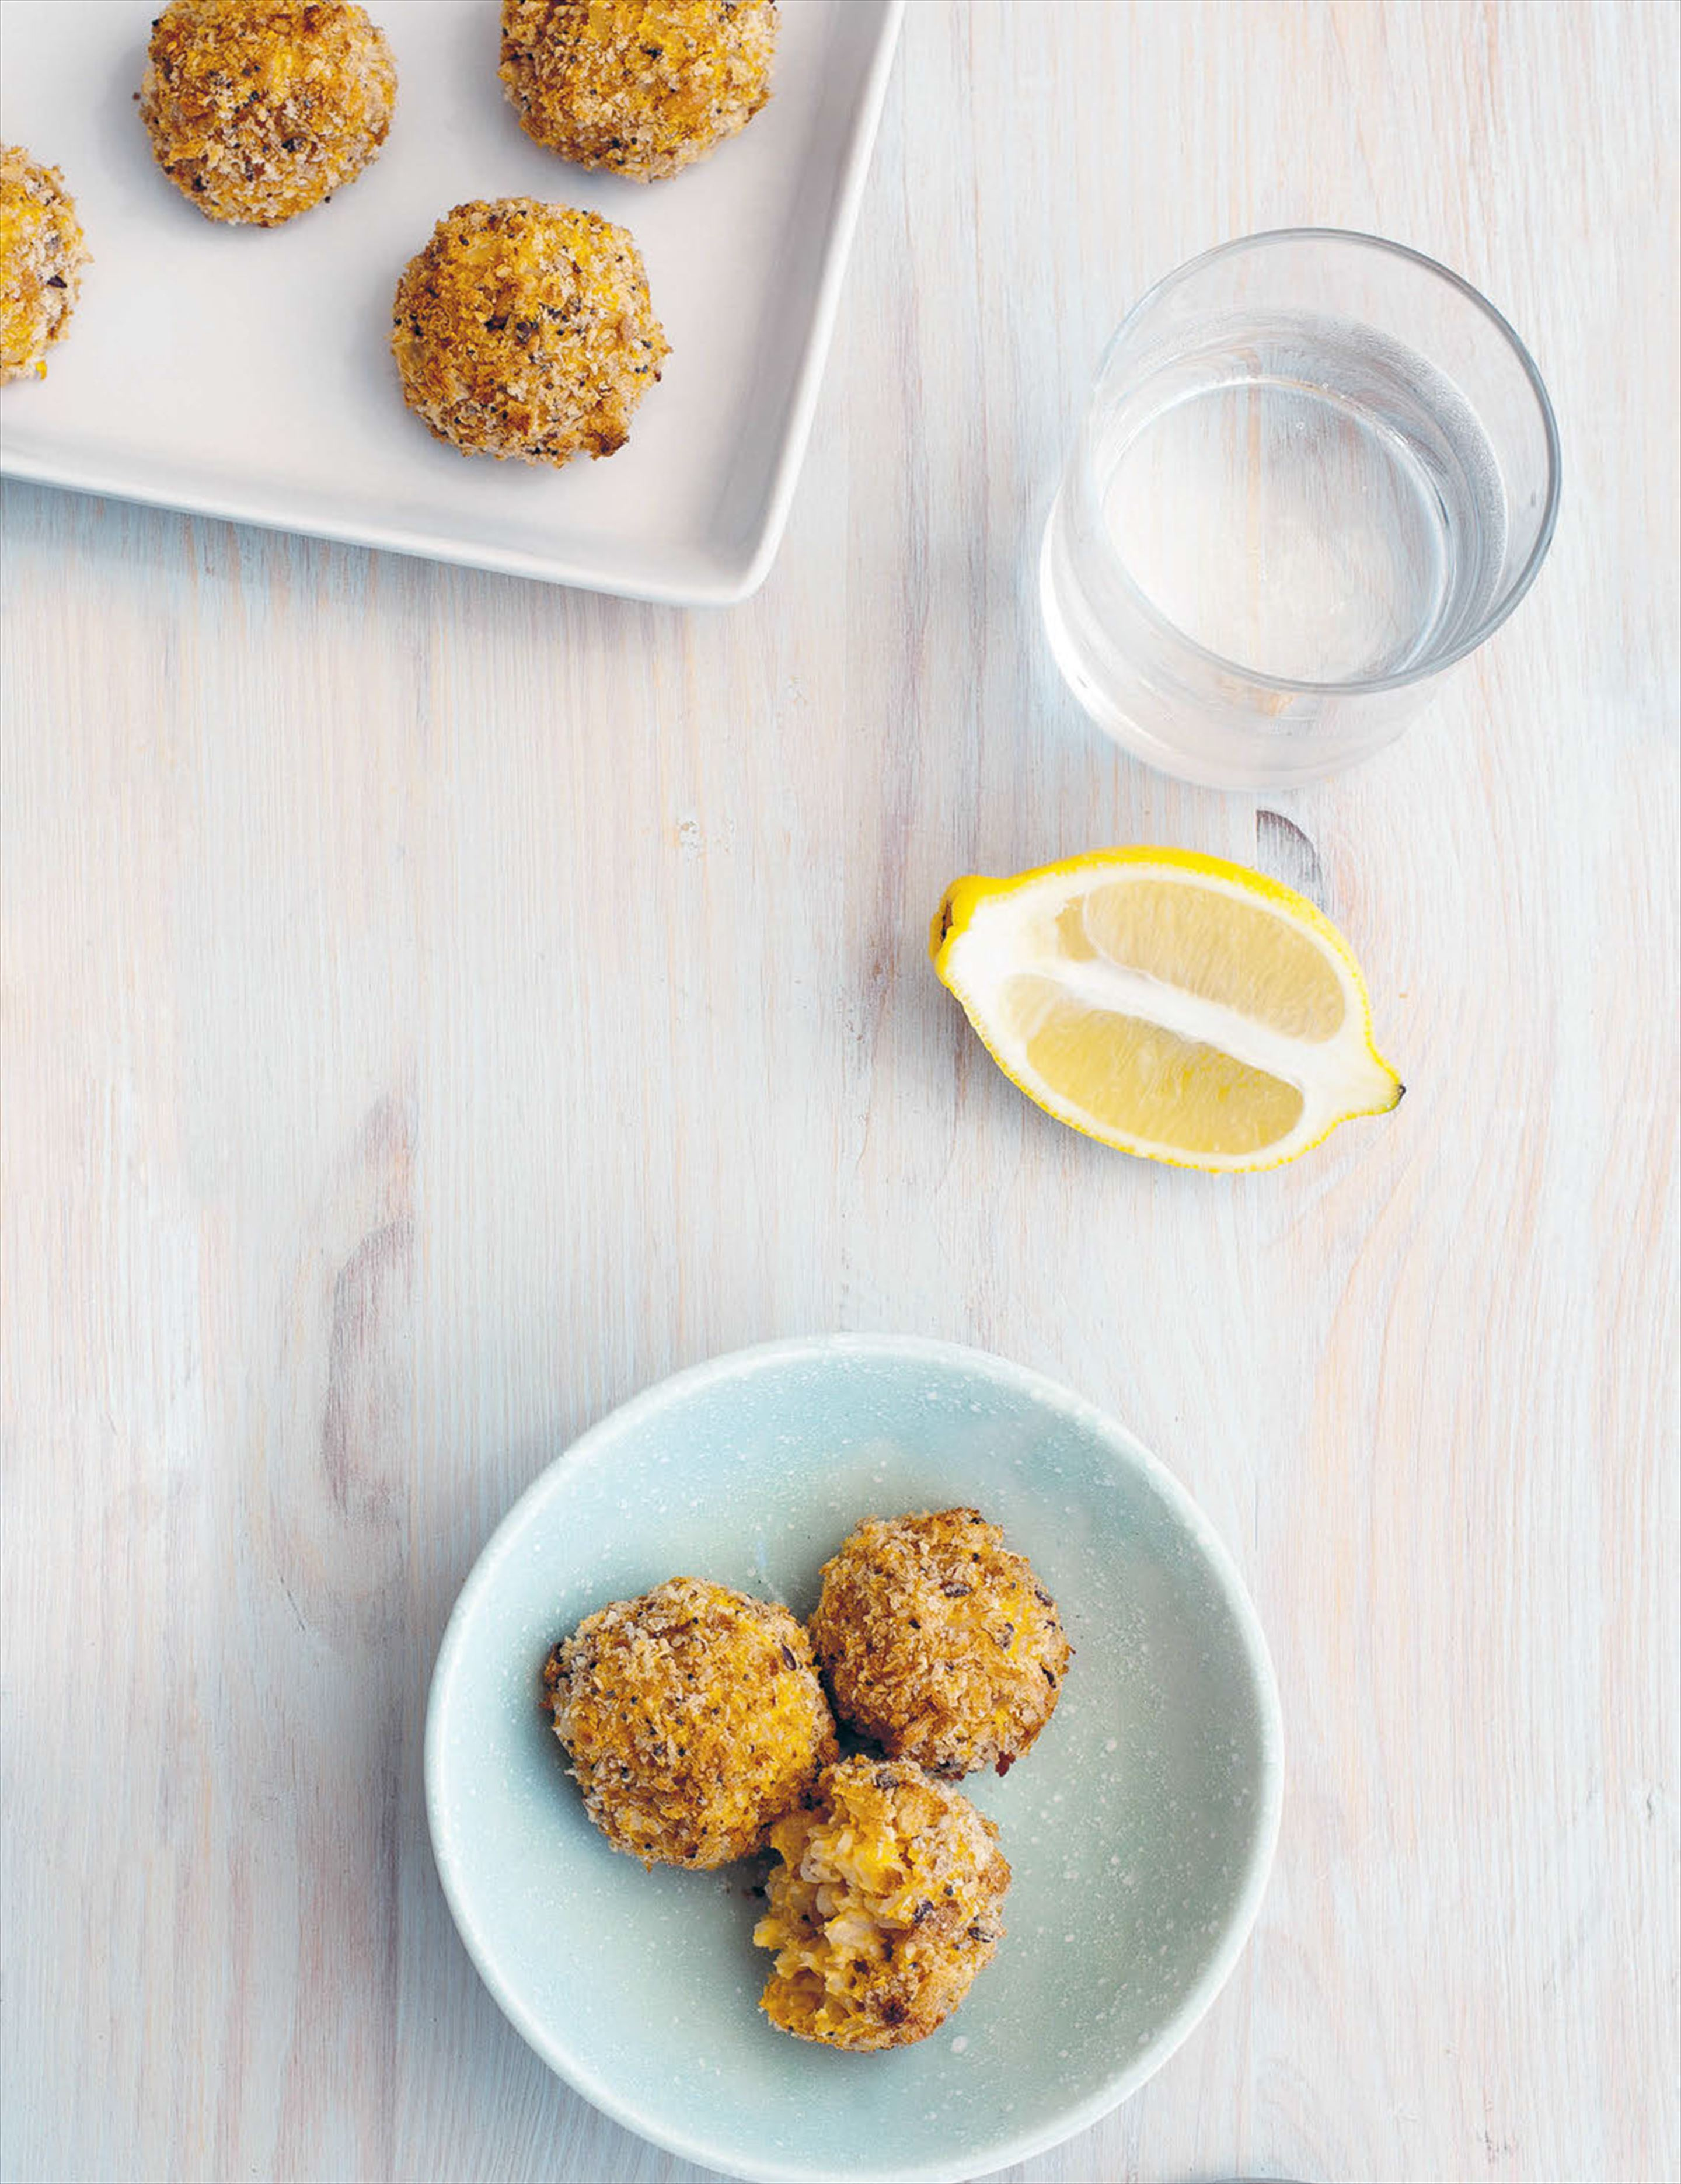 Sweet potato arancini balls